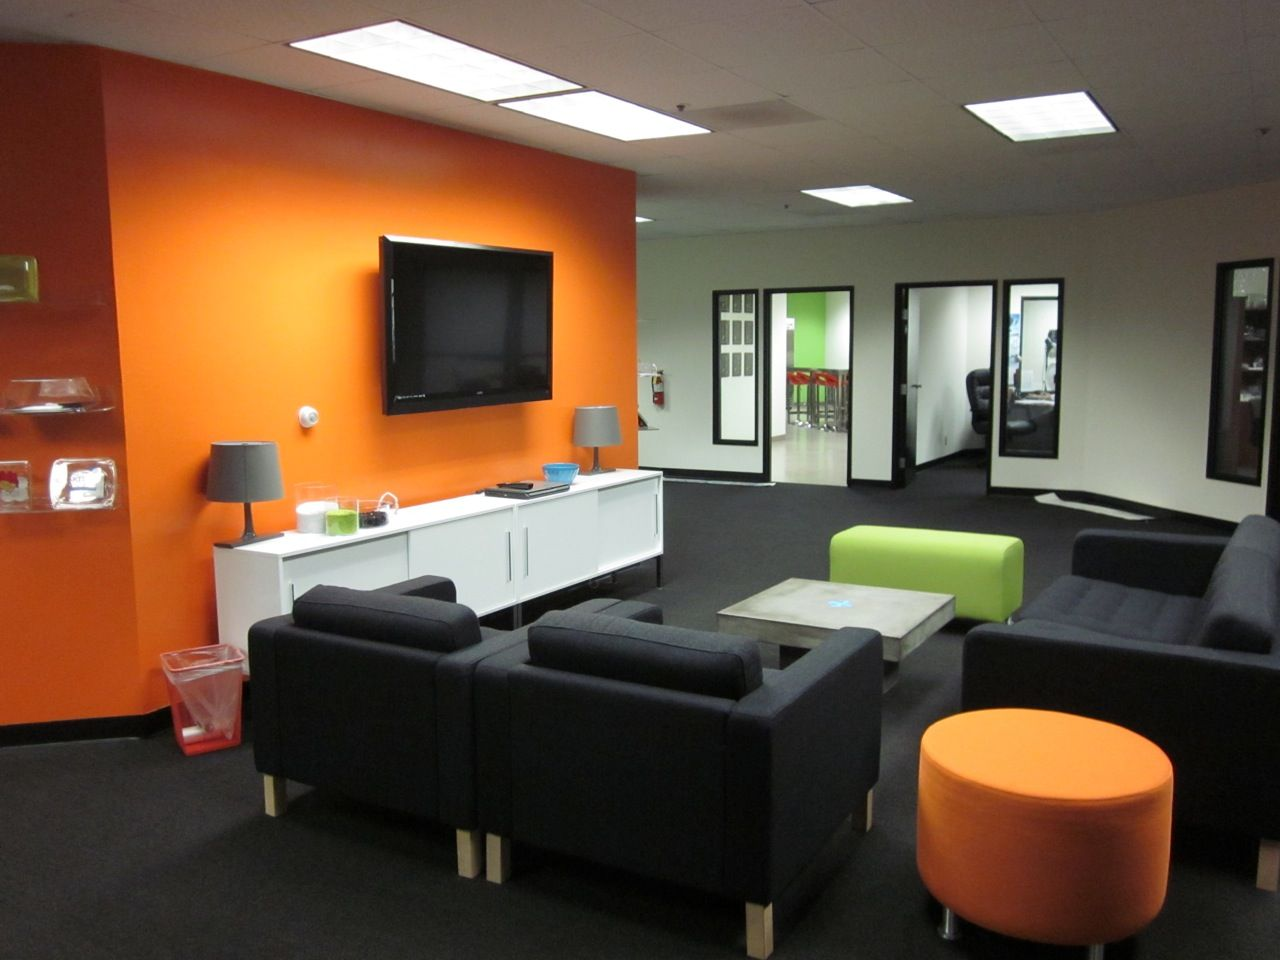 Commercial Office Relocation Using Mostly IKEA Furnishings And Orange U0026 Lime  Green Accents. Karlstad Sofa